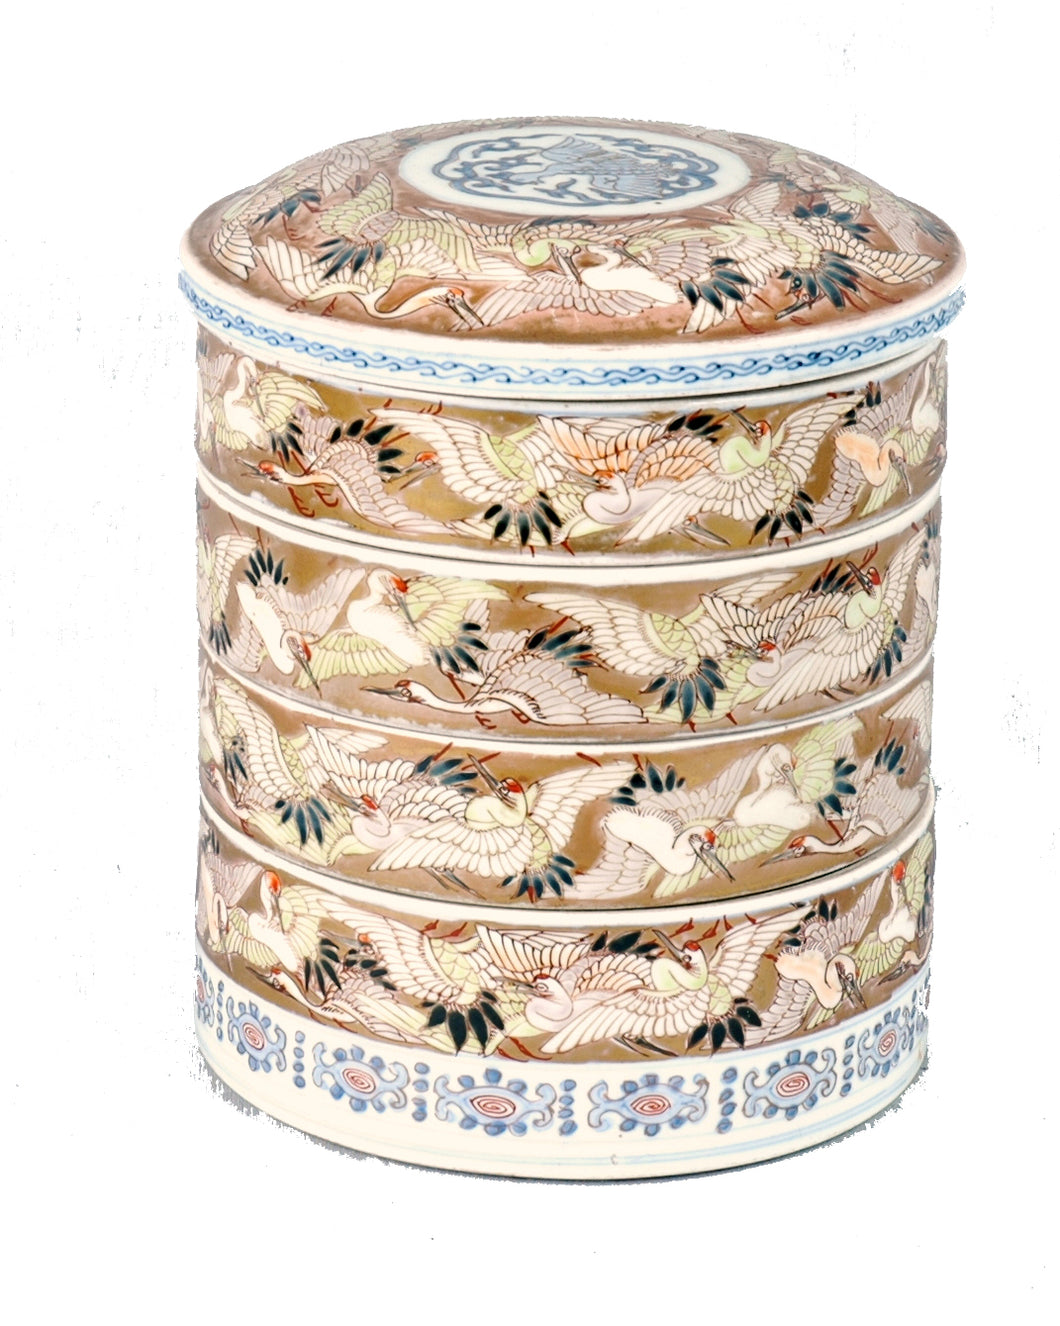 Antique Porcelain Sweet Meat or Stacking dishes, Qing Dynasty